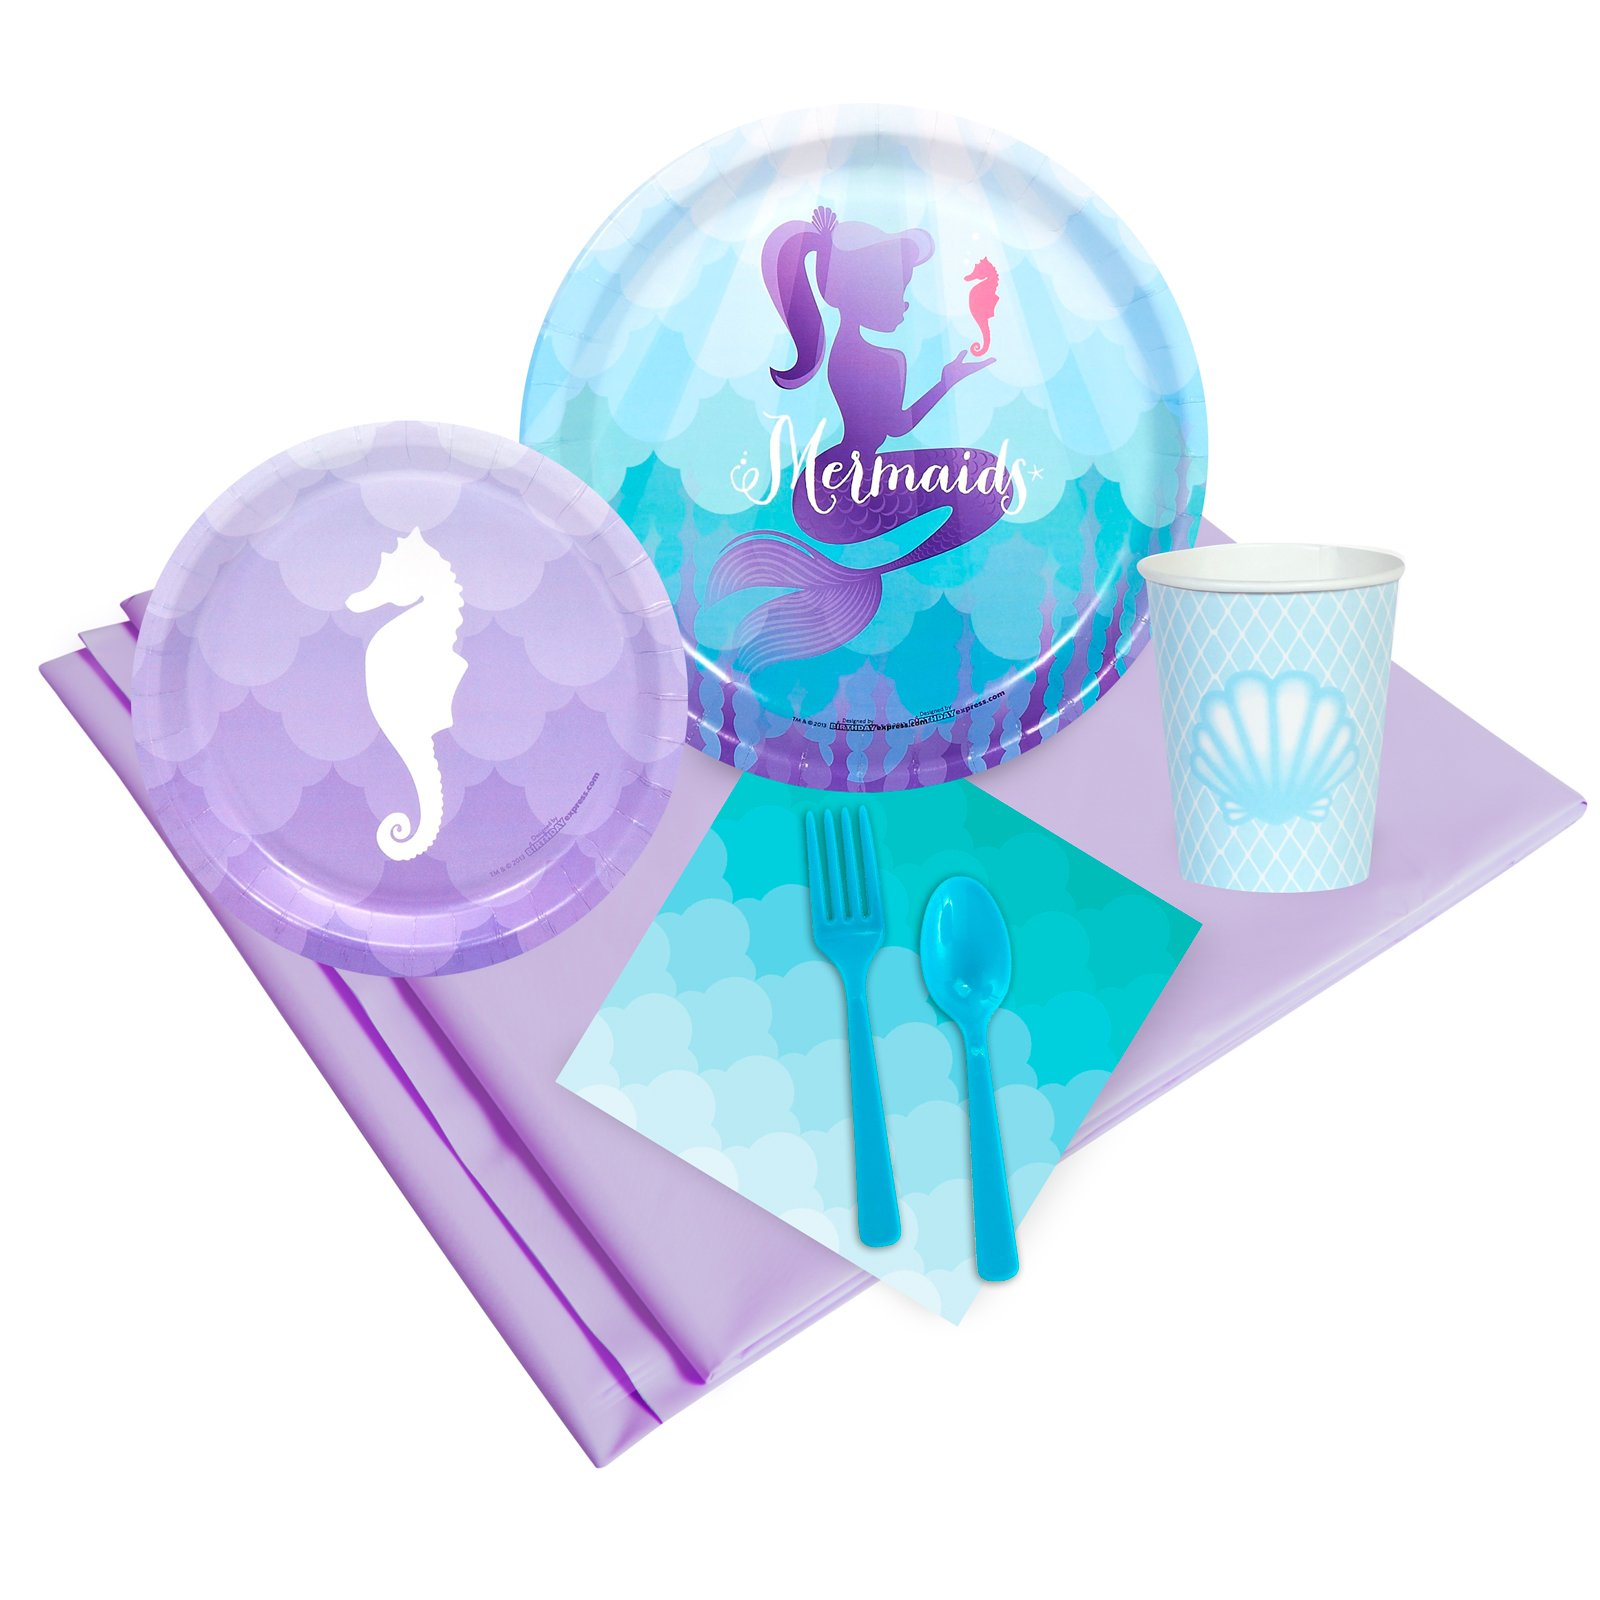 BirthdayExpress Mermaids Under The Sea Party Supplies - Party Pack for 16